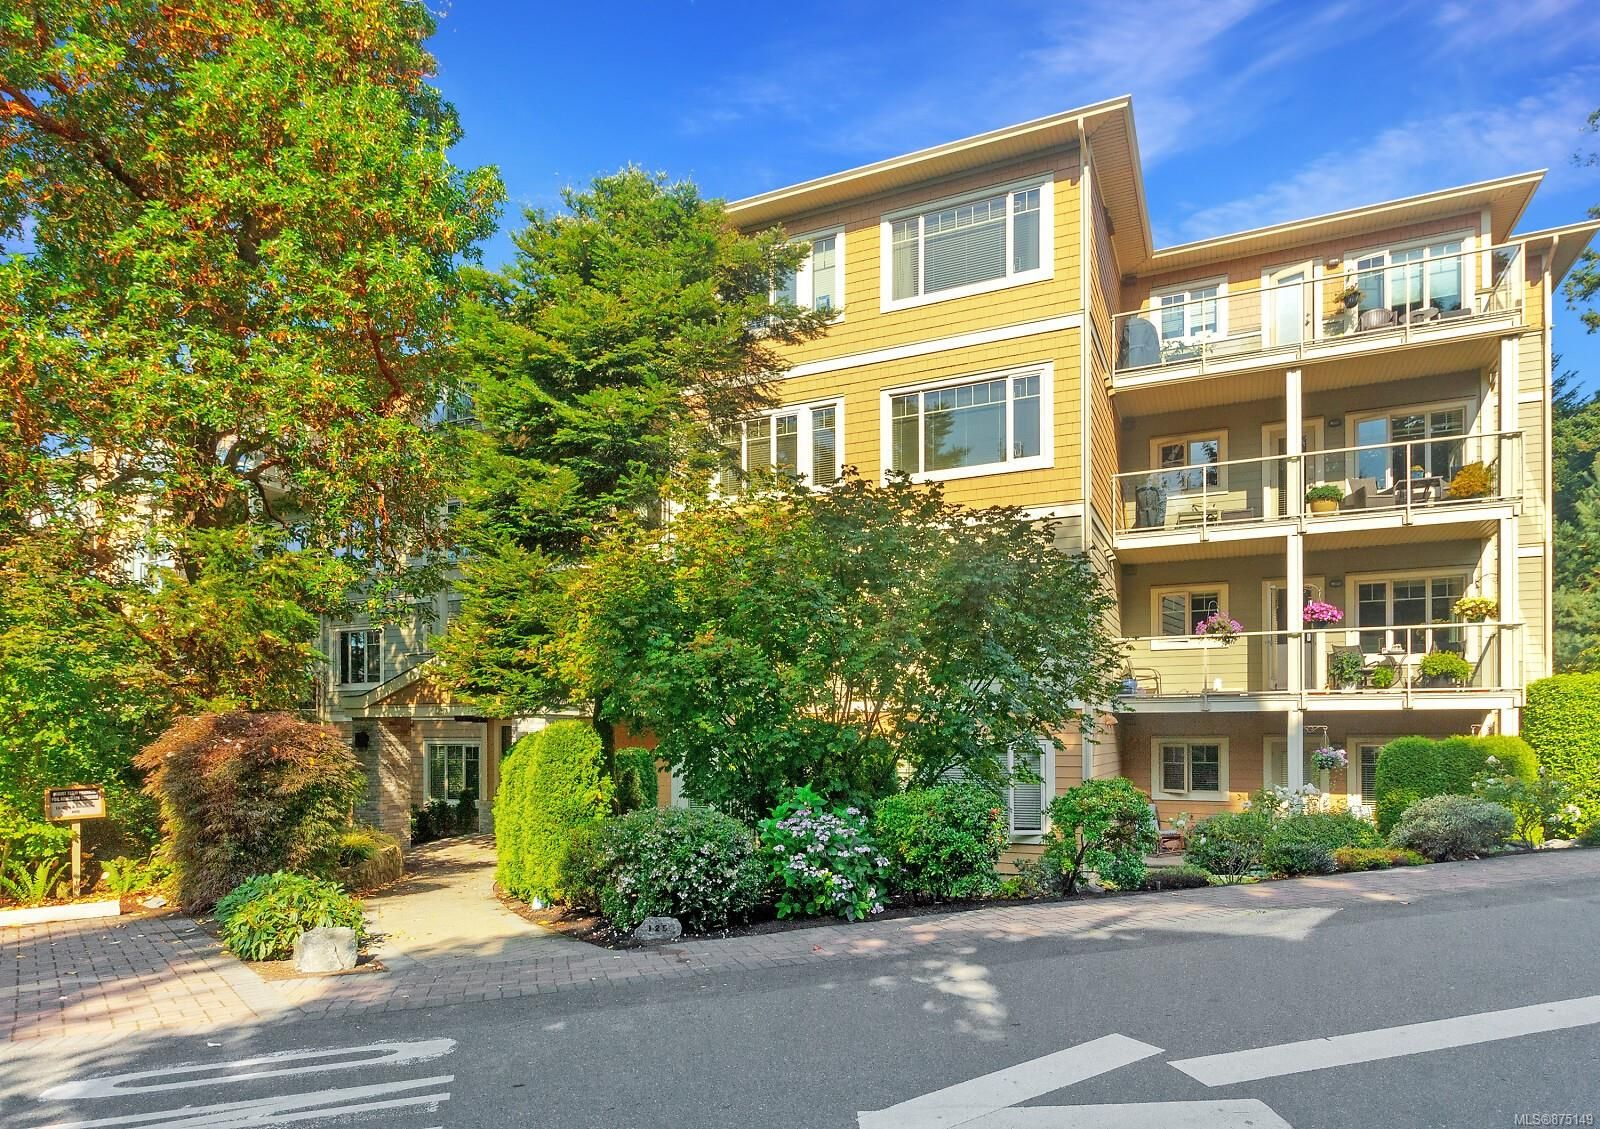 Main Photo: 207 125 ALDERSMITH Pl in : VR View Royal Condo for sale (View Royal)  : MLS®# 875149